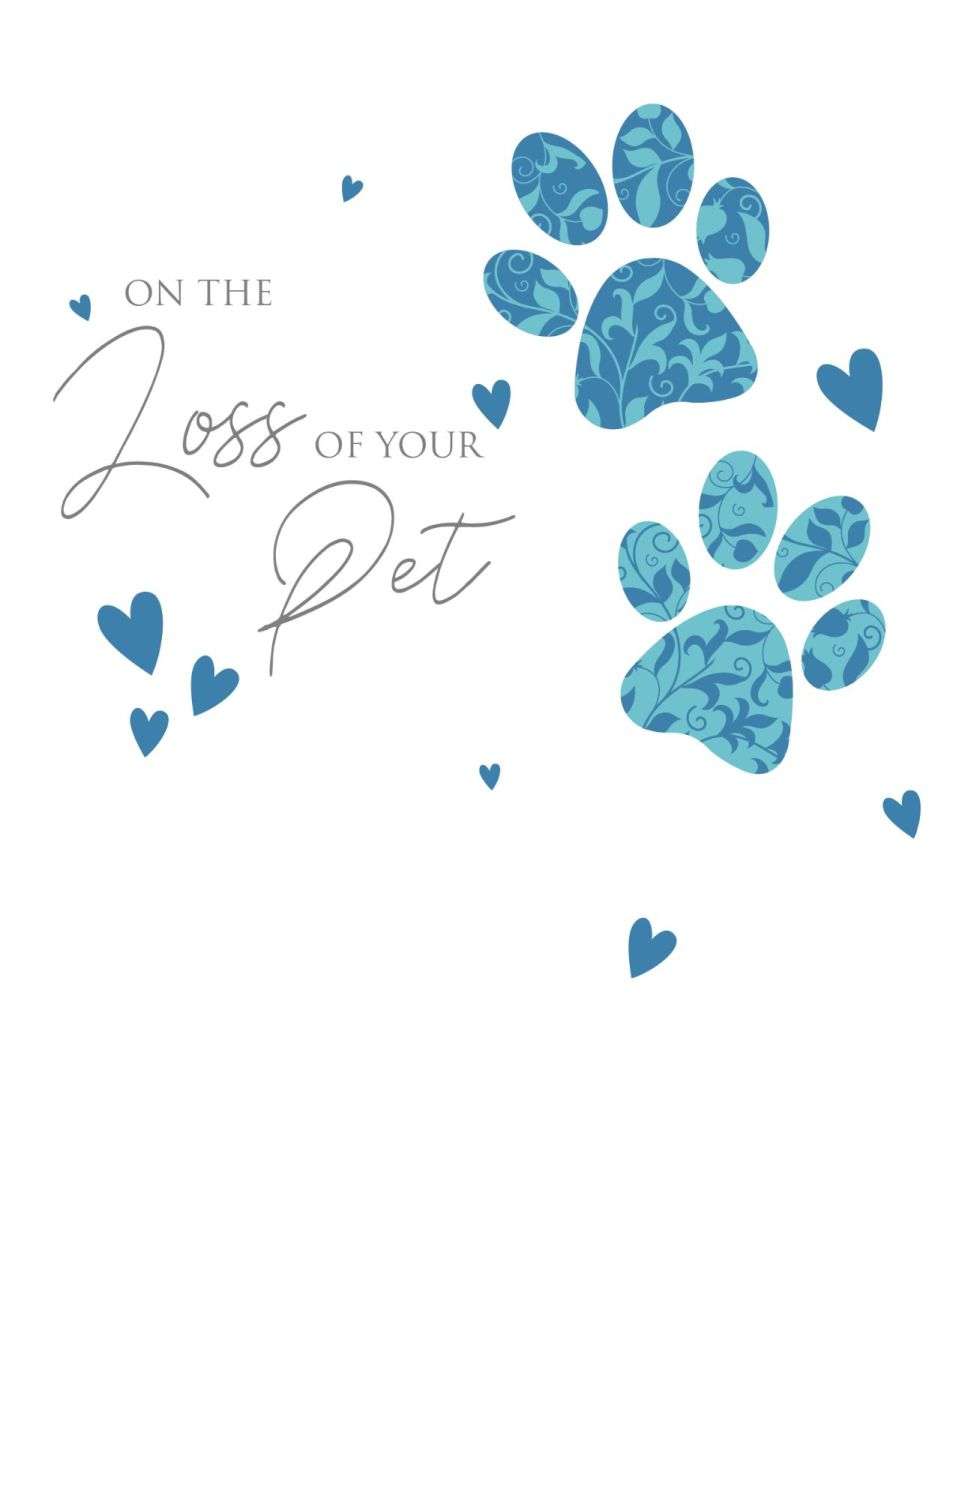 Loss Of Pet Cards - ON The LOSS Of Your PET - Sympathy CARD - Pet MEMORIAL